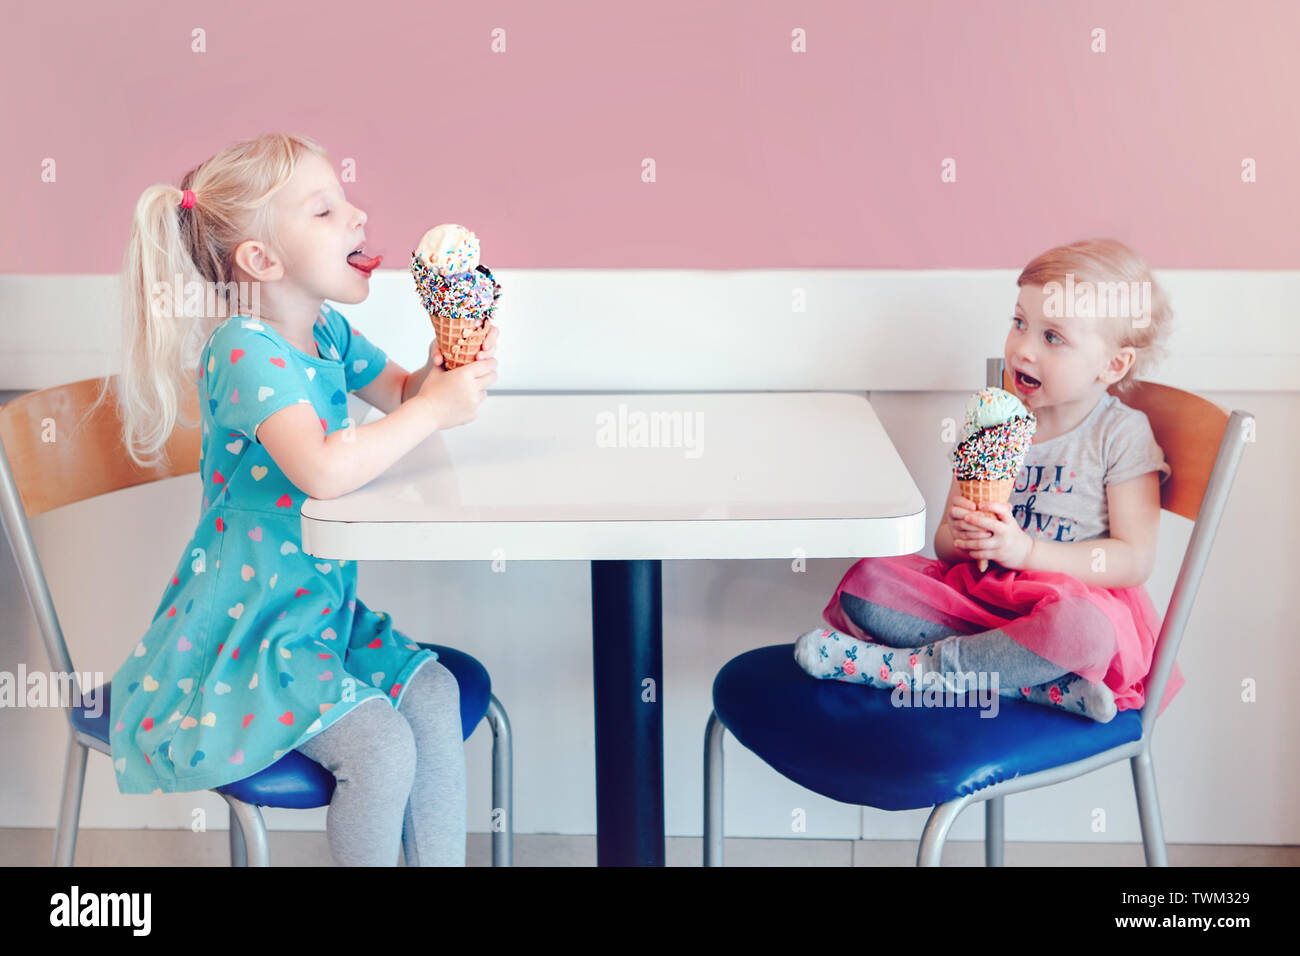 Lifestyle portrait of two happy Caucasian cute adorable funny children girls sitting together eating licking ice-cream with colorful sprinkles. Love e - Stock Image